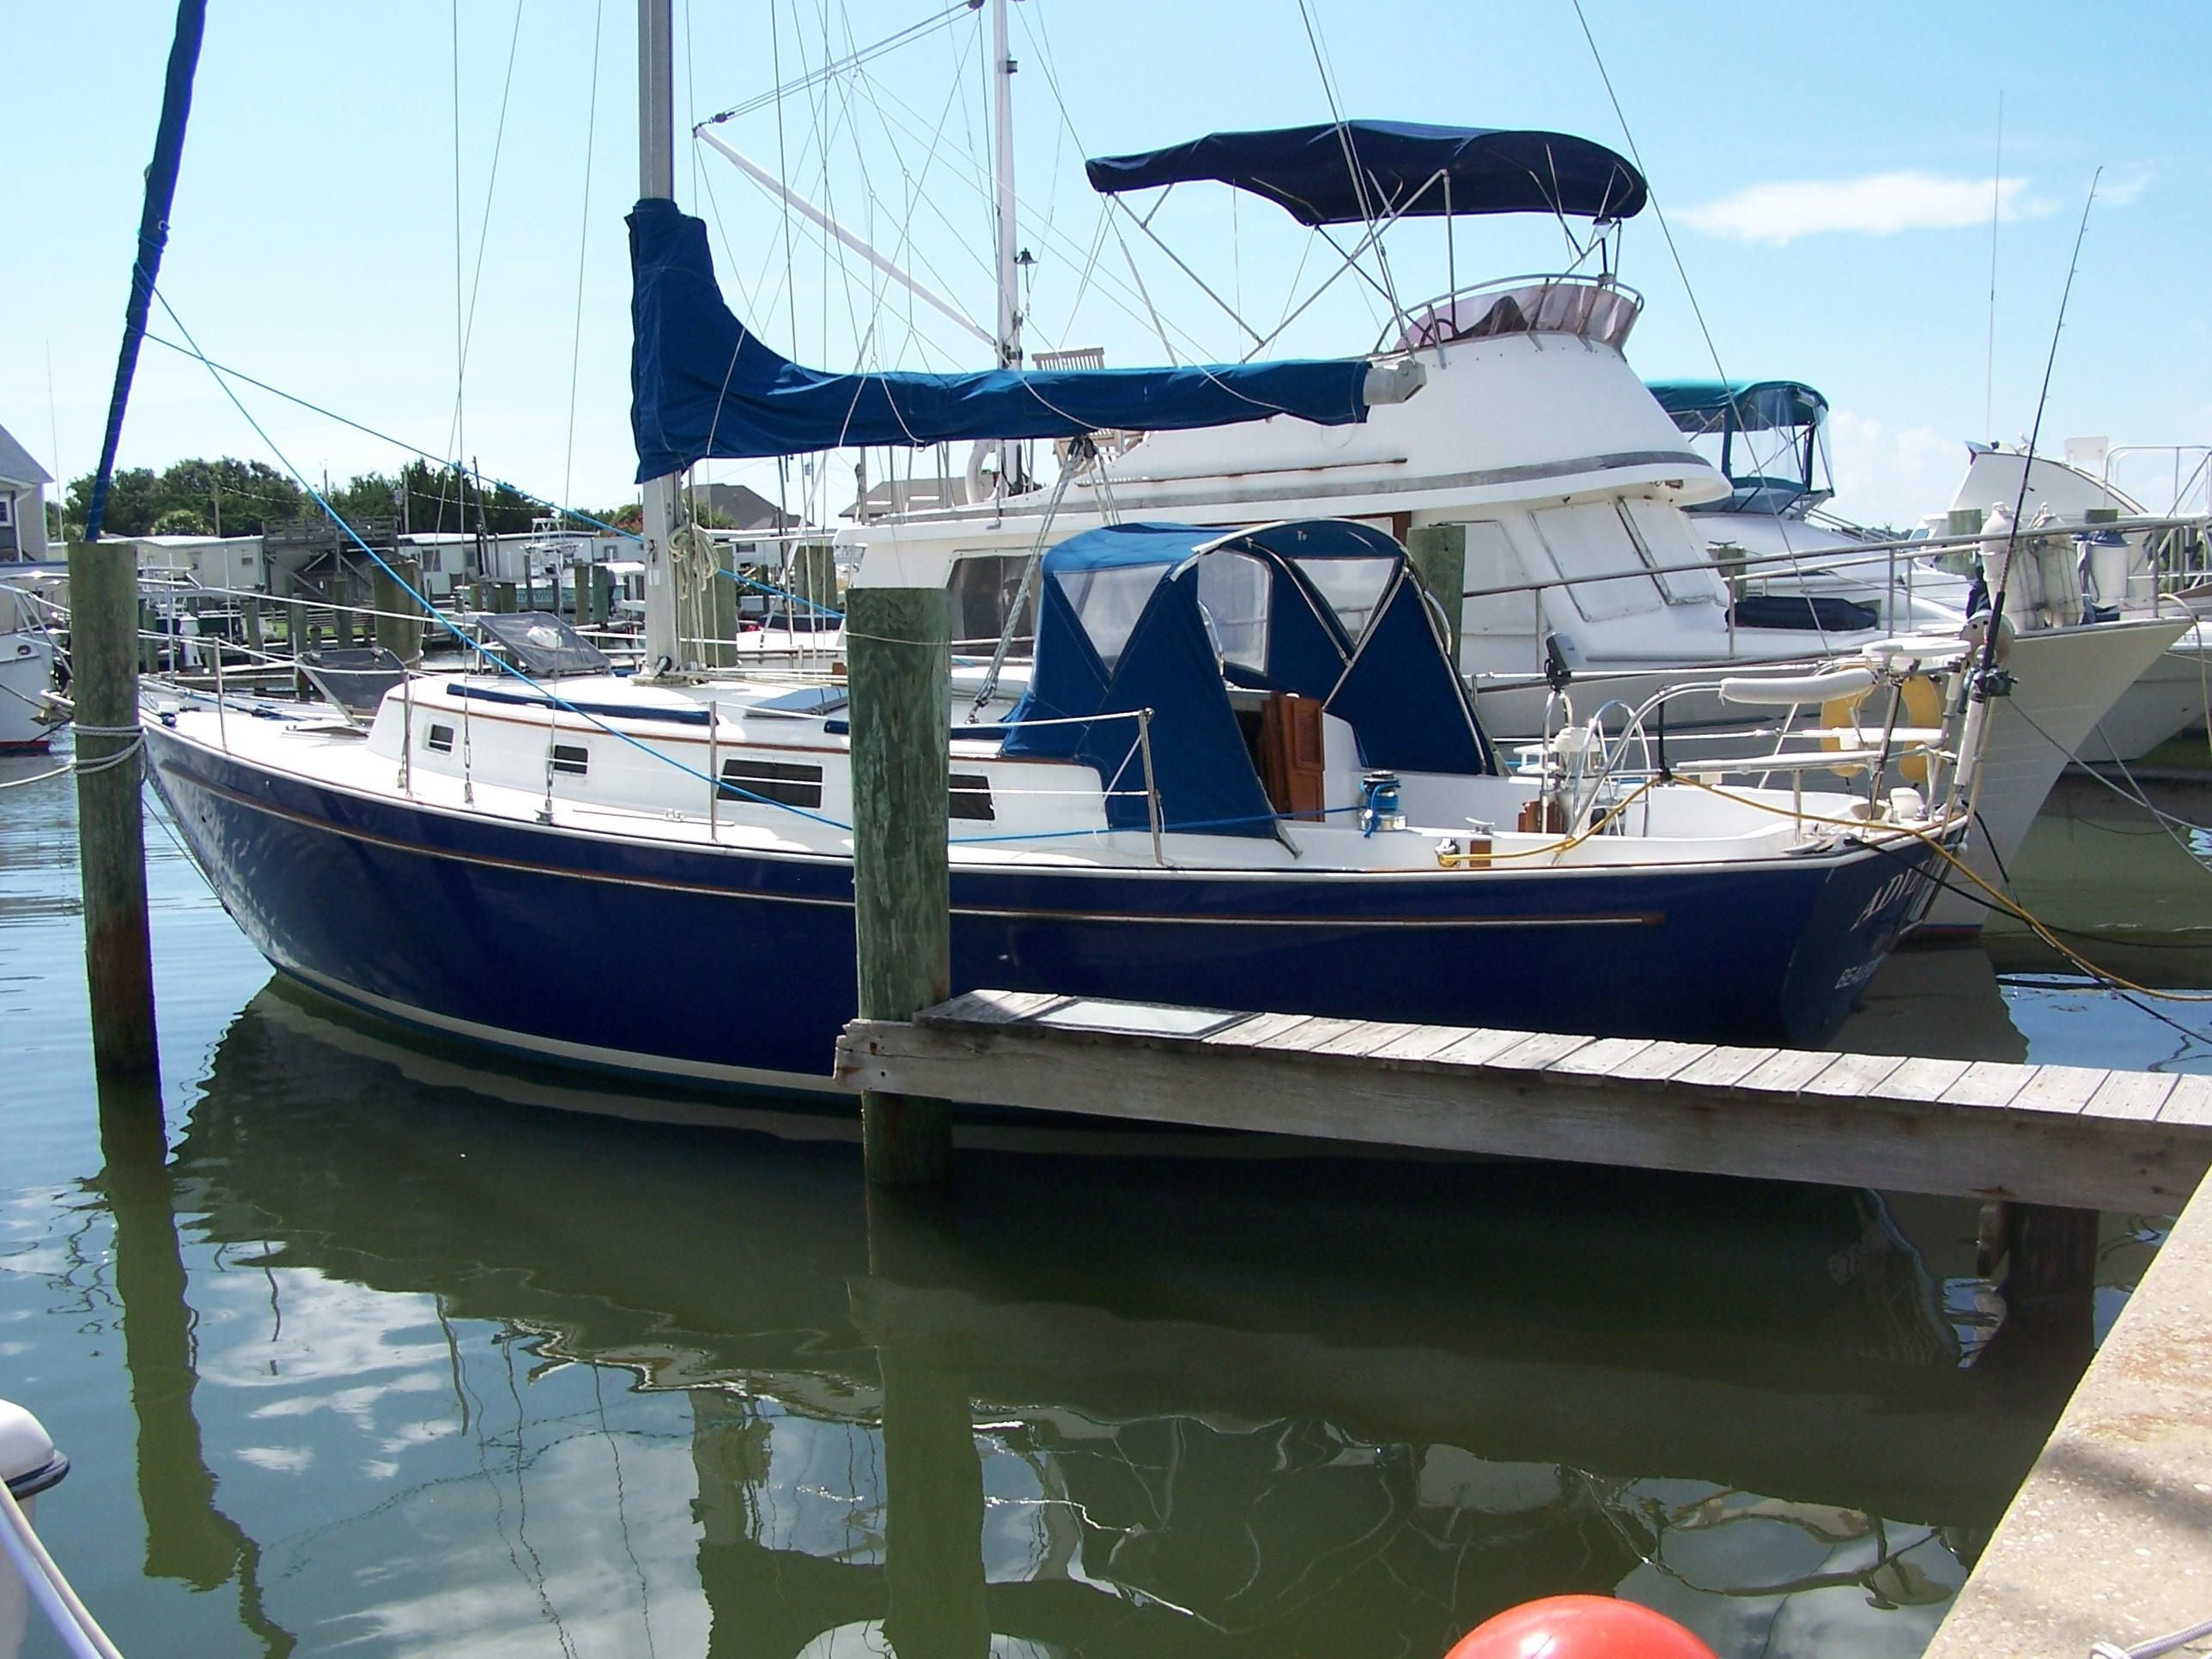 Swansboro (NC) United States  city pictures gallery : 1979 Hinterhoeller Niagara Sail Boat For Sale www.yachtworld.com